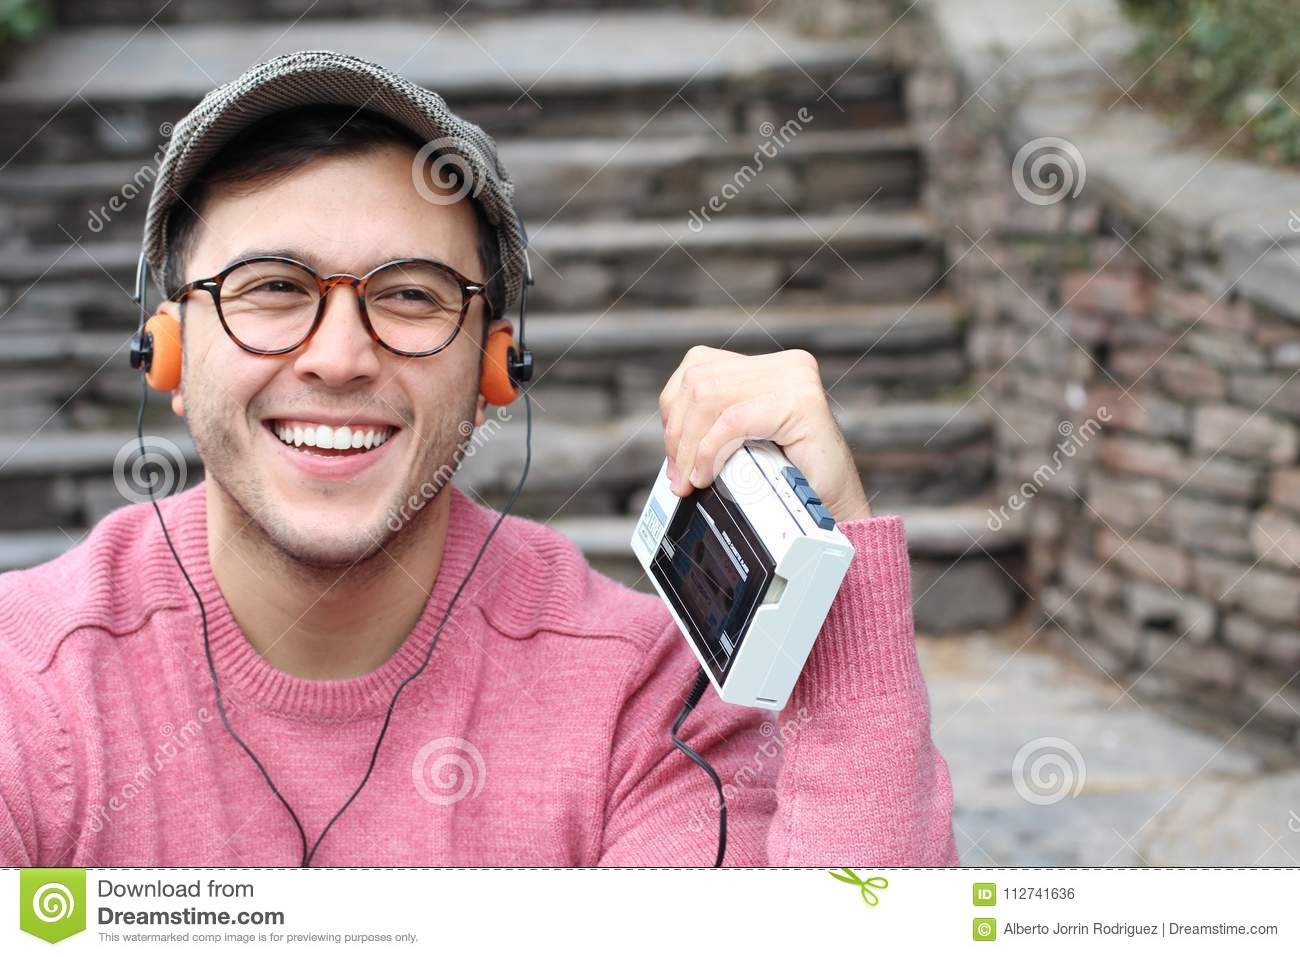 Guy listening to Stereo cassette Walkman in the 80s or the 90s